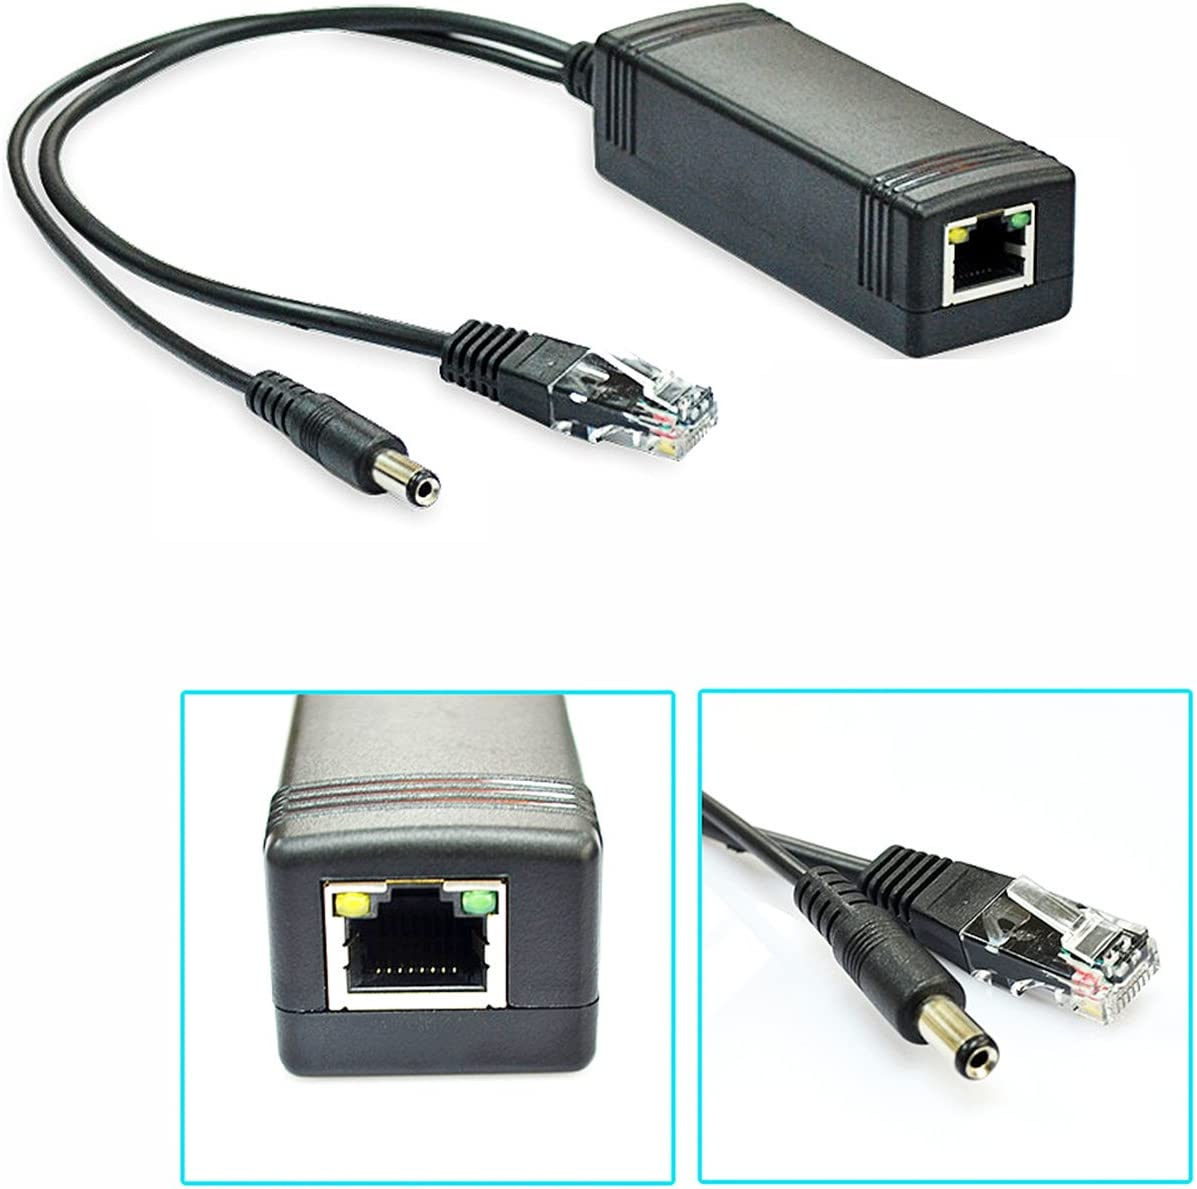 2-Pack 802.3af PoE Splitter Wireless AP Router Voip Phone iCreatin 48V to 12V Power Over Ethernet Adapter for 10//100Mbps IP Camera